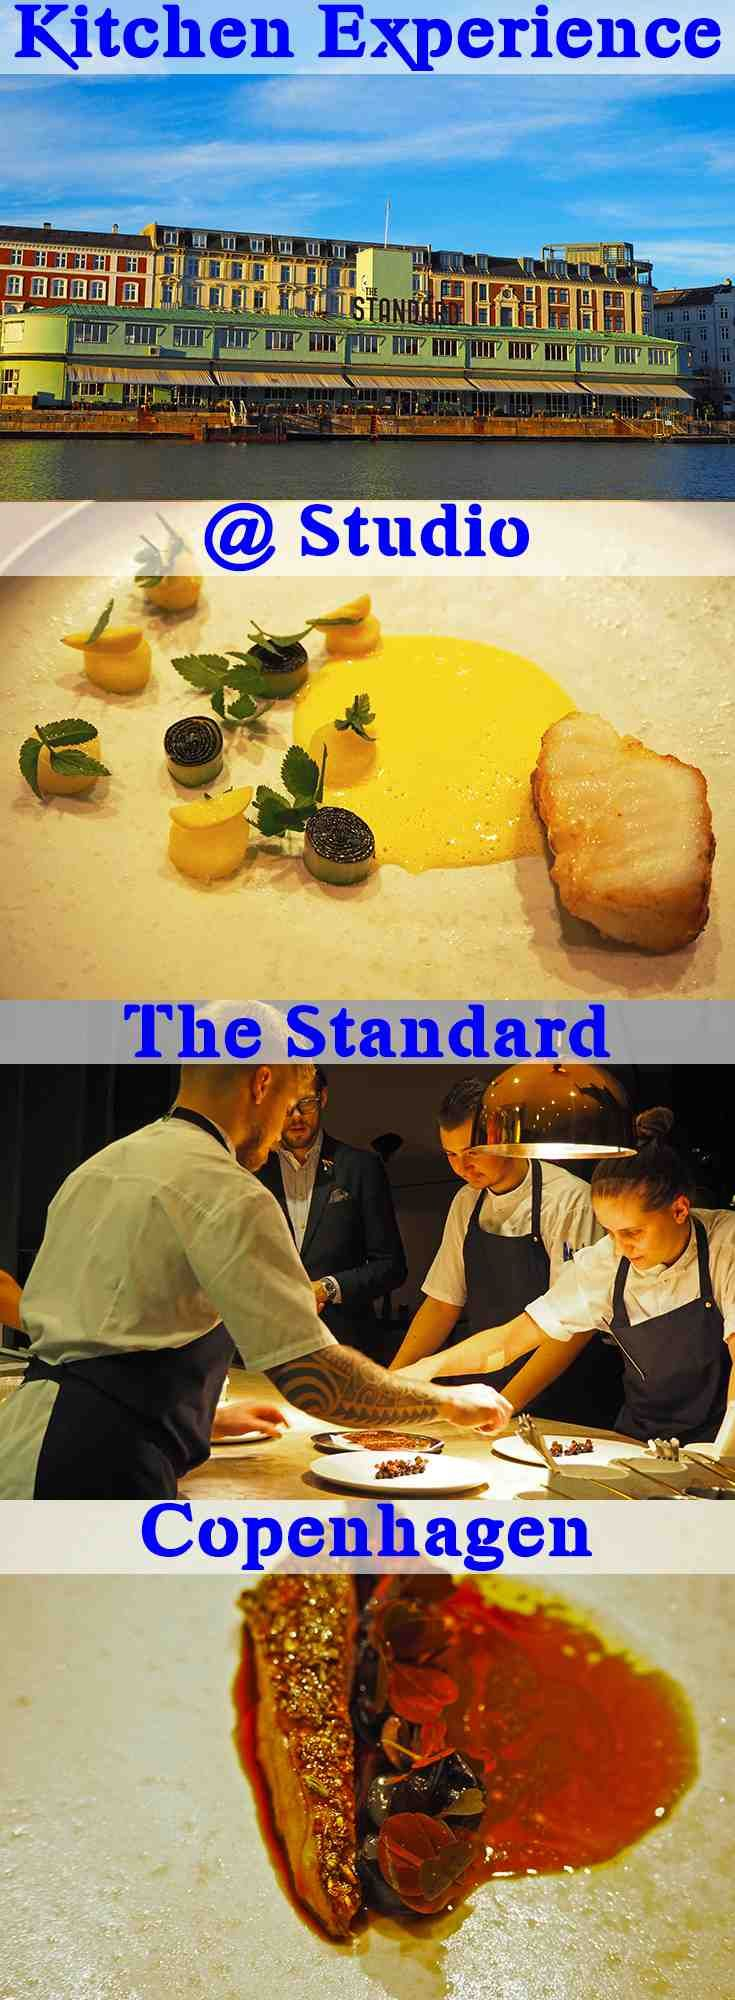 Watch the chefs prepare all the dishes with the Kitchen Experience at Studio. A michelin star restaurant with a relaxed atmosphere and excellent food #whodoido #studio #finedining #thestandard #copenhagen